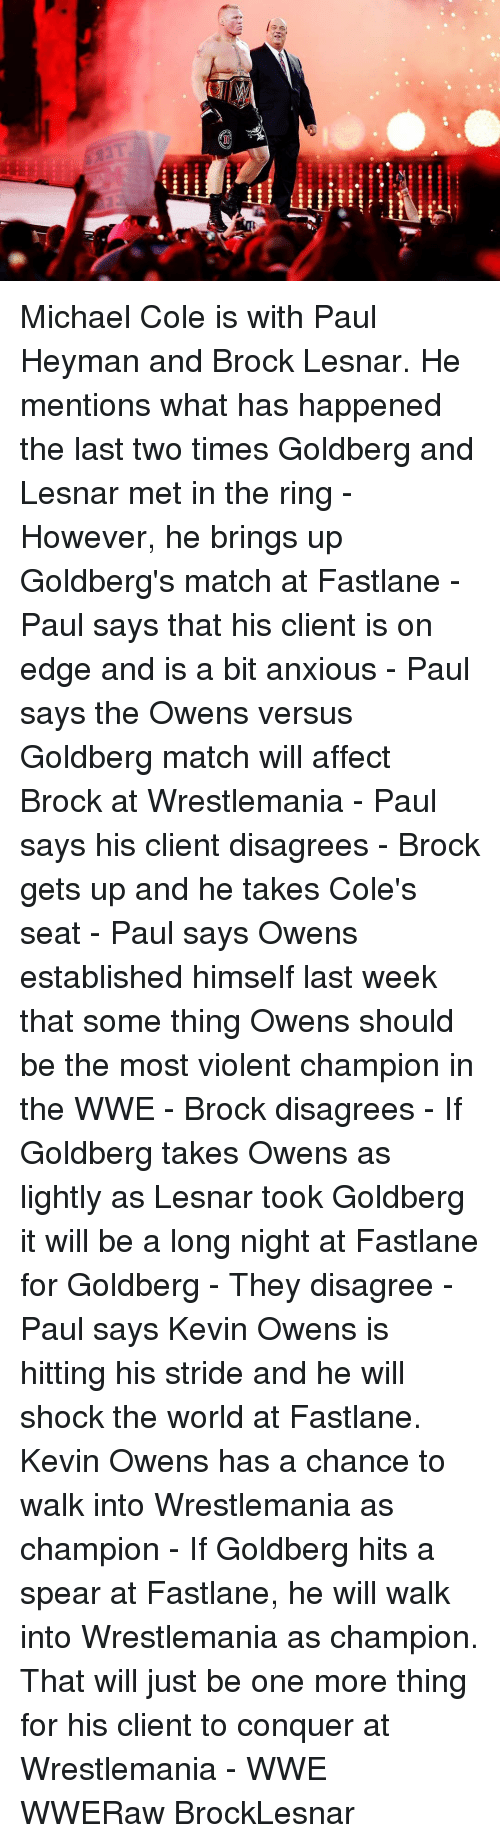 michael cole: i)i  lea Michael Cole is with Paul Heyman and Brock Lesnar. He mentions what has happened the last two times Goldberg and Lesnar met in the ring - However, he brings up Goldberg's match at Fastlane - Paul says that his client is on edge and is a bit anxious - Paul says the Owens versus Goldberg match will affect Brock at Wrestlemania - Paul says his client disagrees - Brock gets up and he takes Cole's seat - Paul says Owens established himself last week that some thing Owens should be the most violent champion in the WWE - Brock disagrees - If Goldberg takes Owens as lightly as Lesnar took Goldberg it will be a long night at Fastlane for Goldberg - They disagree - Paul says Kevin Owens is hitting his stride and he will shock the world at Fastlane. Kevin Owens has a chance to walk into Wrestlemania as champion - If Goldberg hits a spear at Fastlane, he will walk into Wrestlemania as champion. That will just be one more thing for his client to conquer at Wrestlemania - WWE WWERaw BrockLesnar